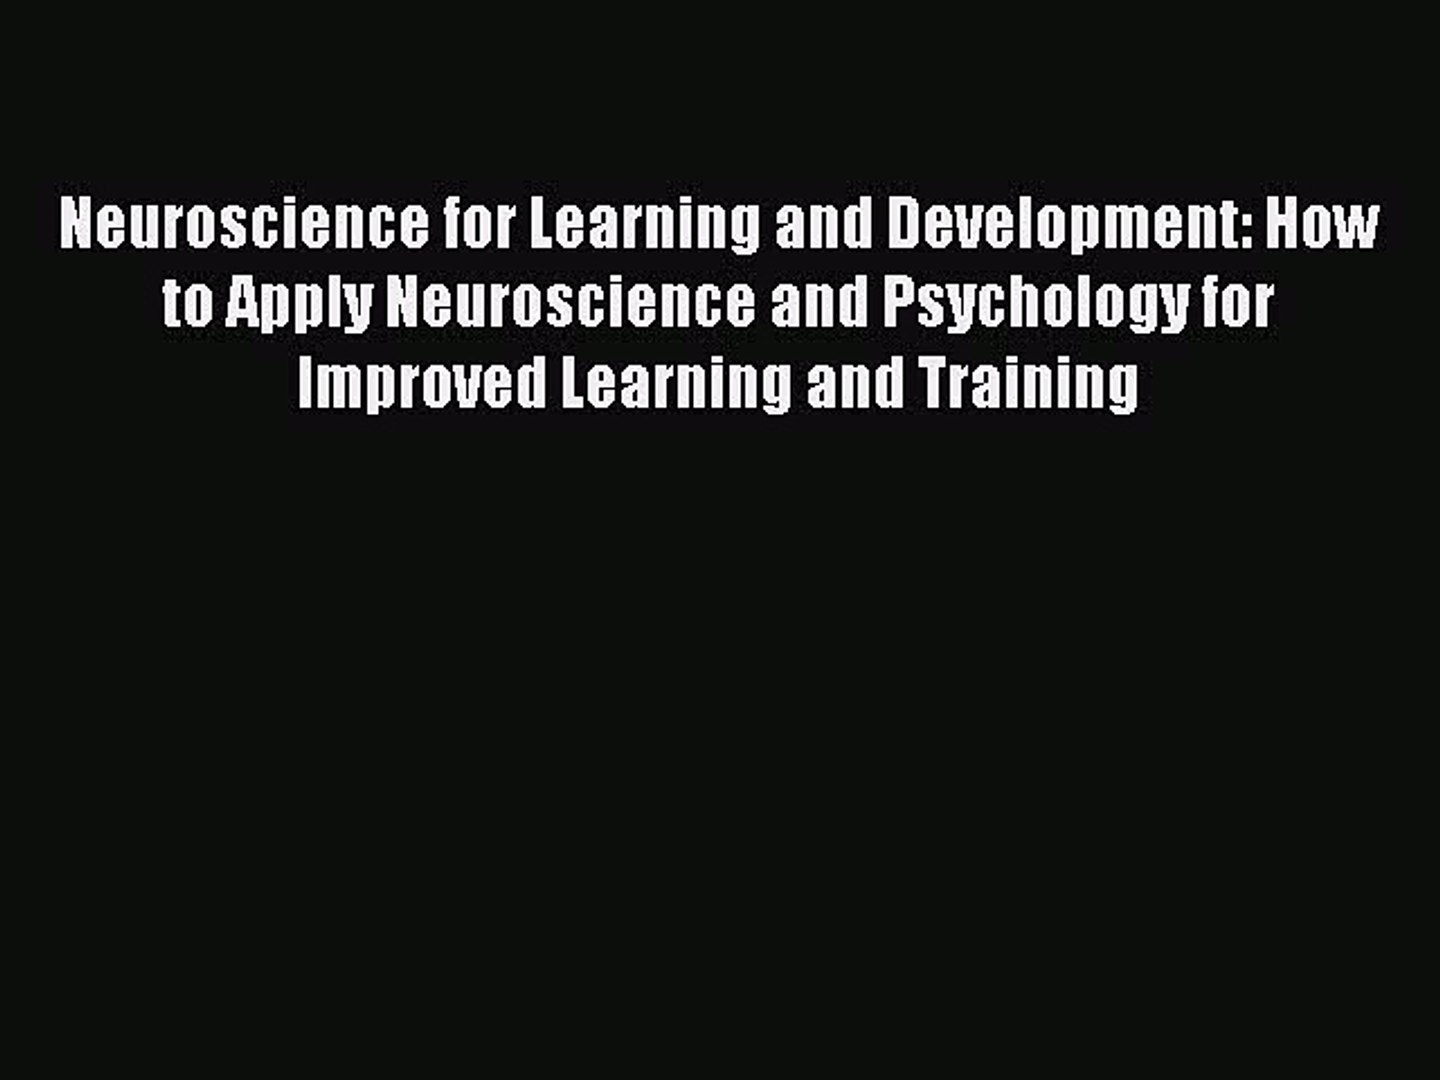 Read Neuroscience for Learning and Development: How to Apply Neuroscience and Psychology for